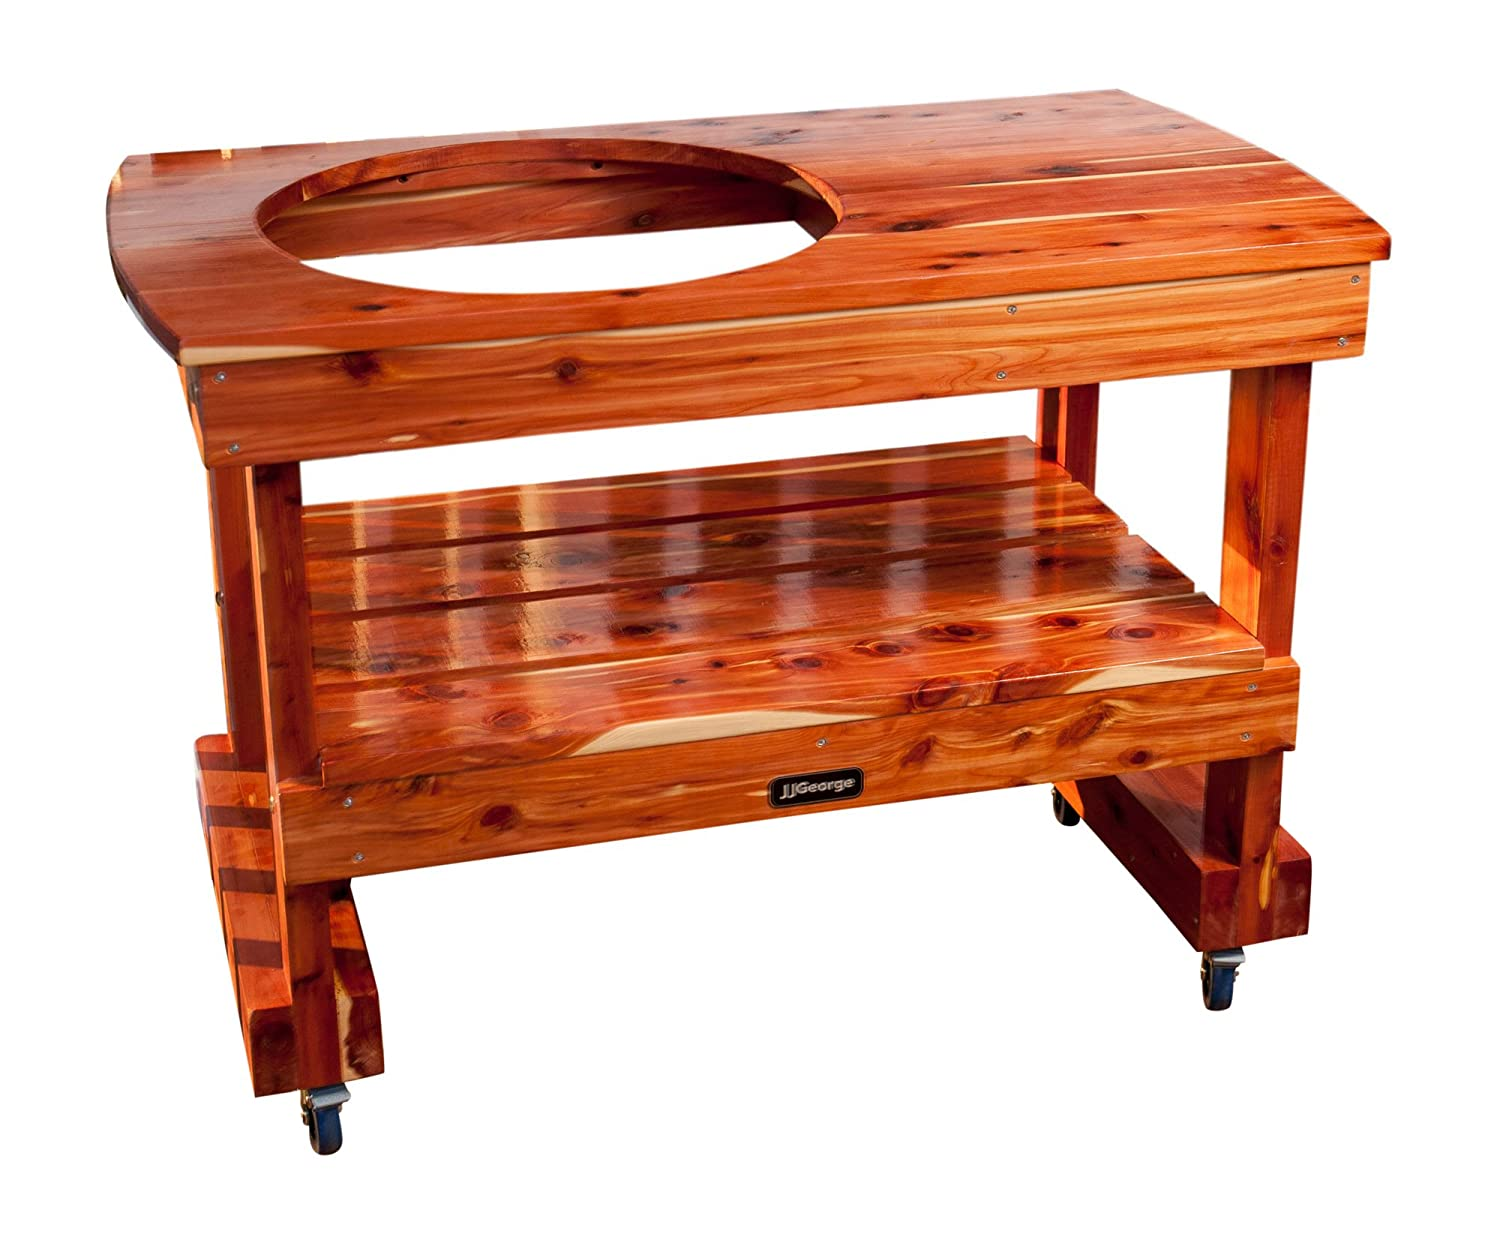 JJGeorge Big Green Egg Table (Compact Table For Large Green Egg)